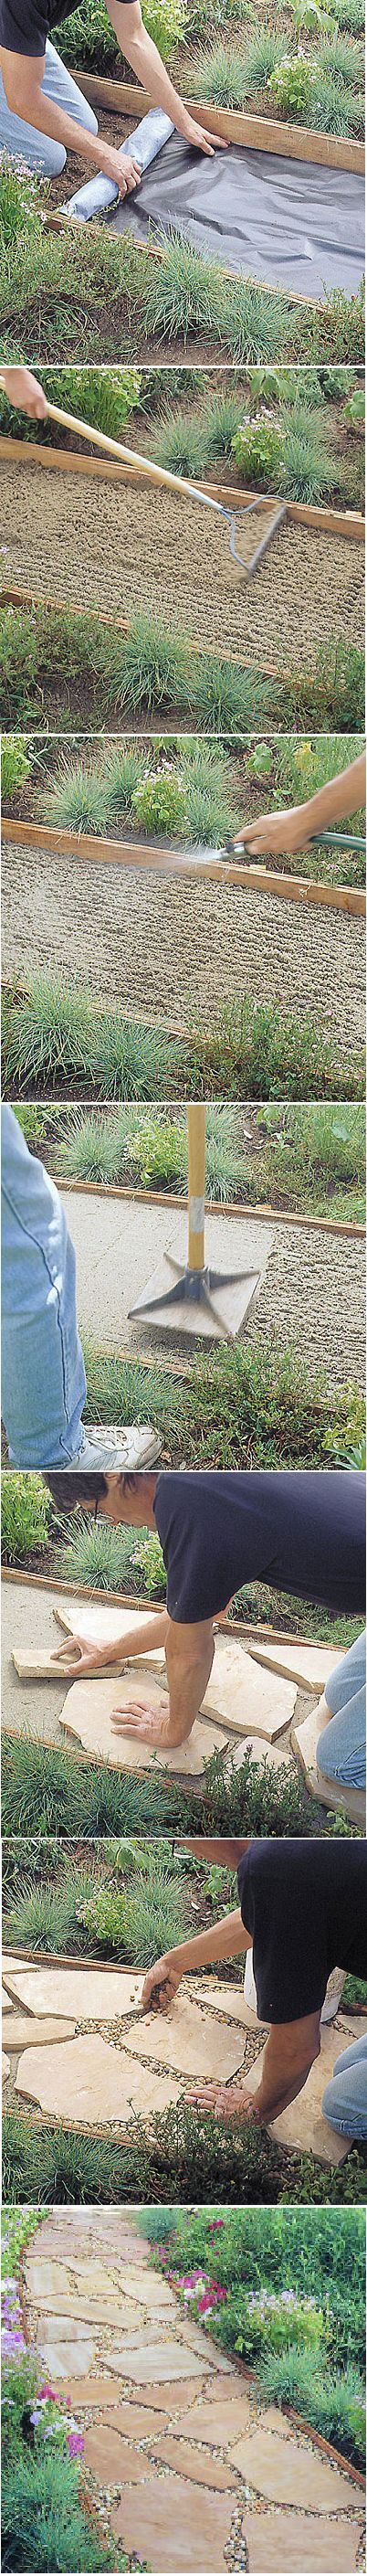 Step 1Install benderboard edging first, then put down landscape fabric (available at nurseries) to prevent weeds. Secure fabric edges under the benderboard